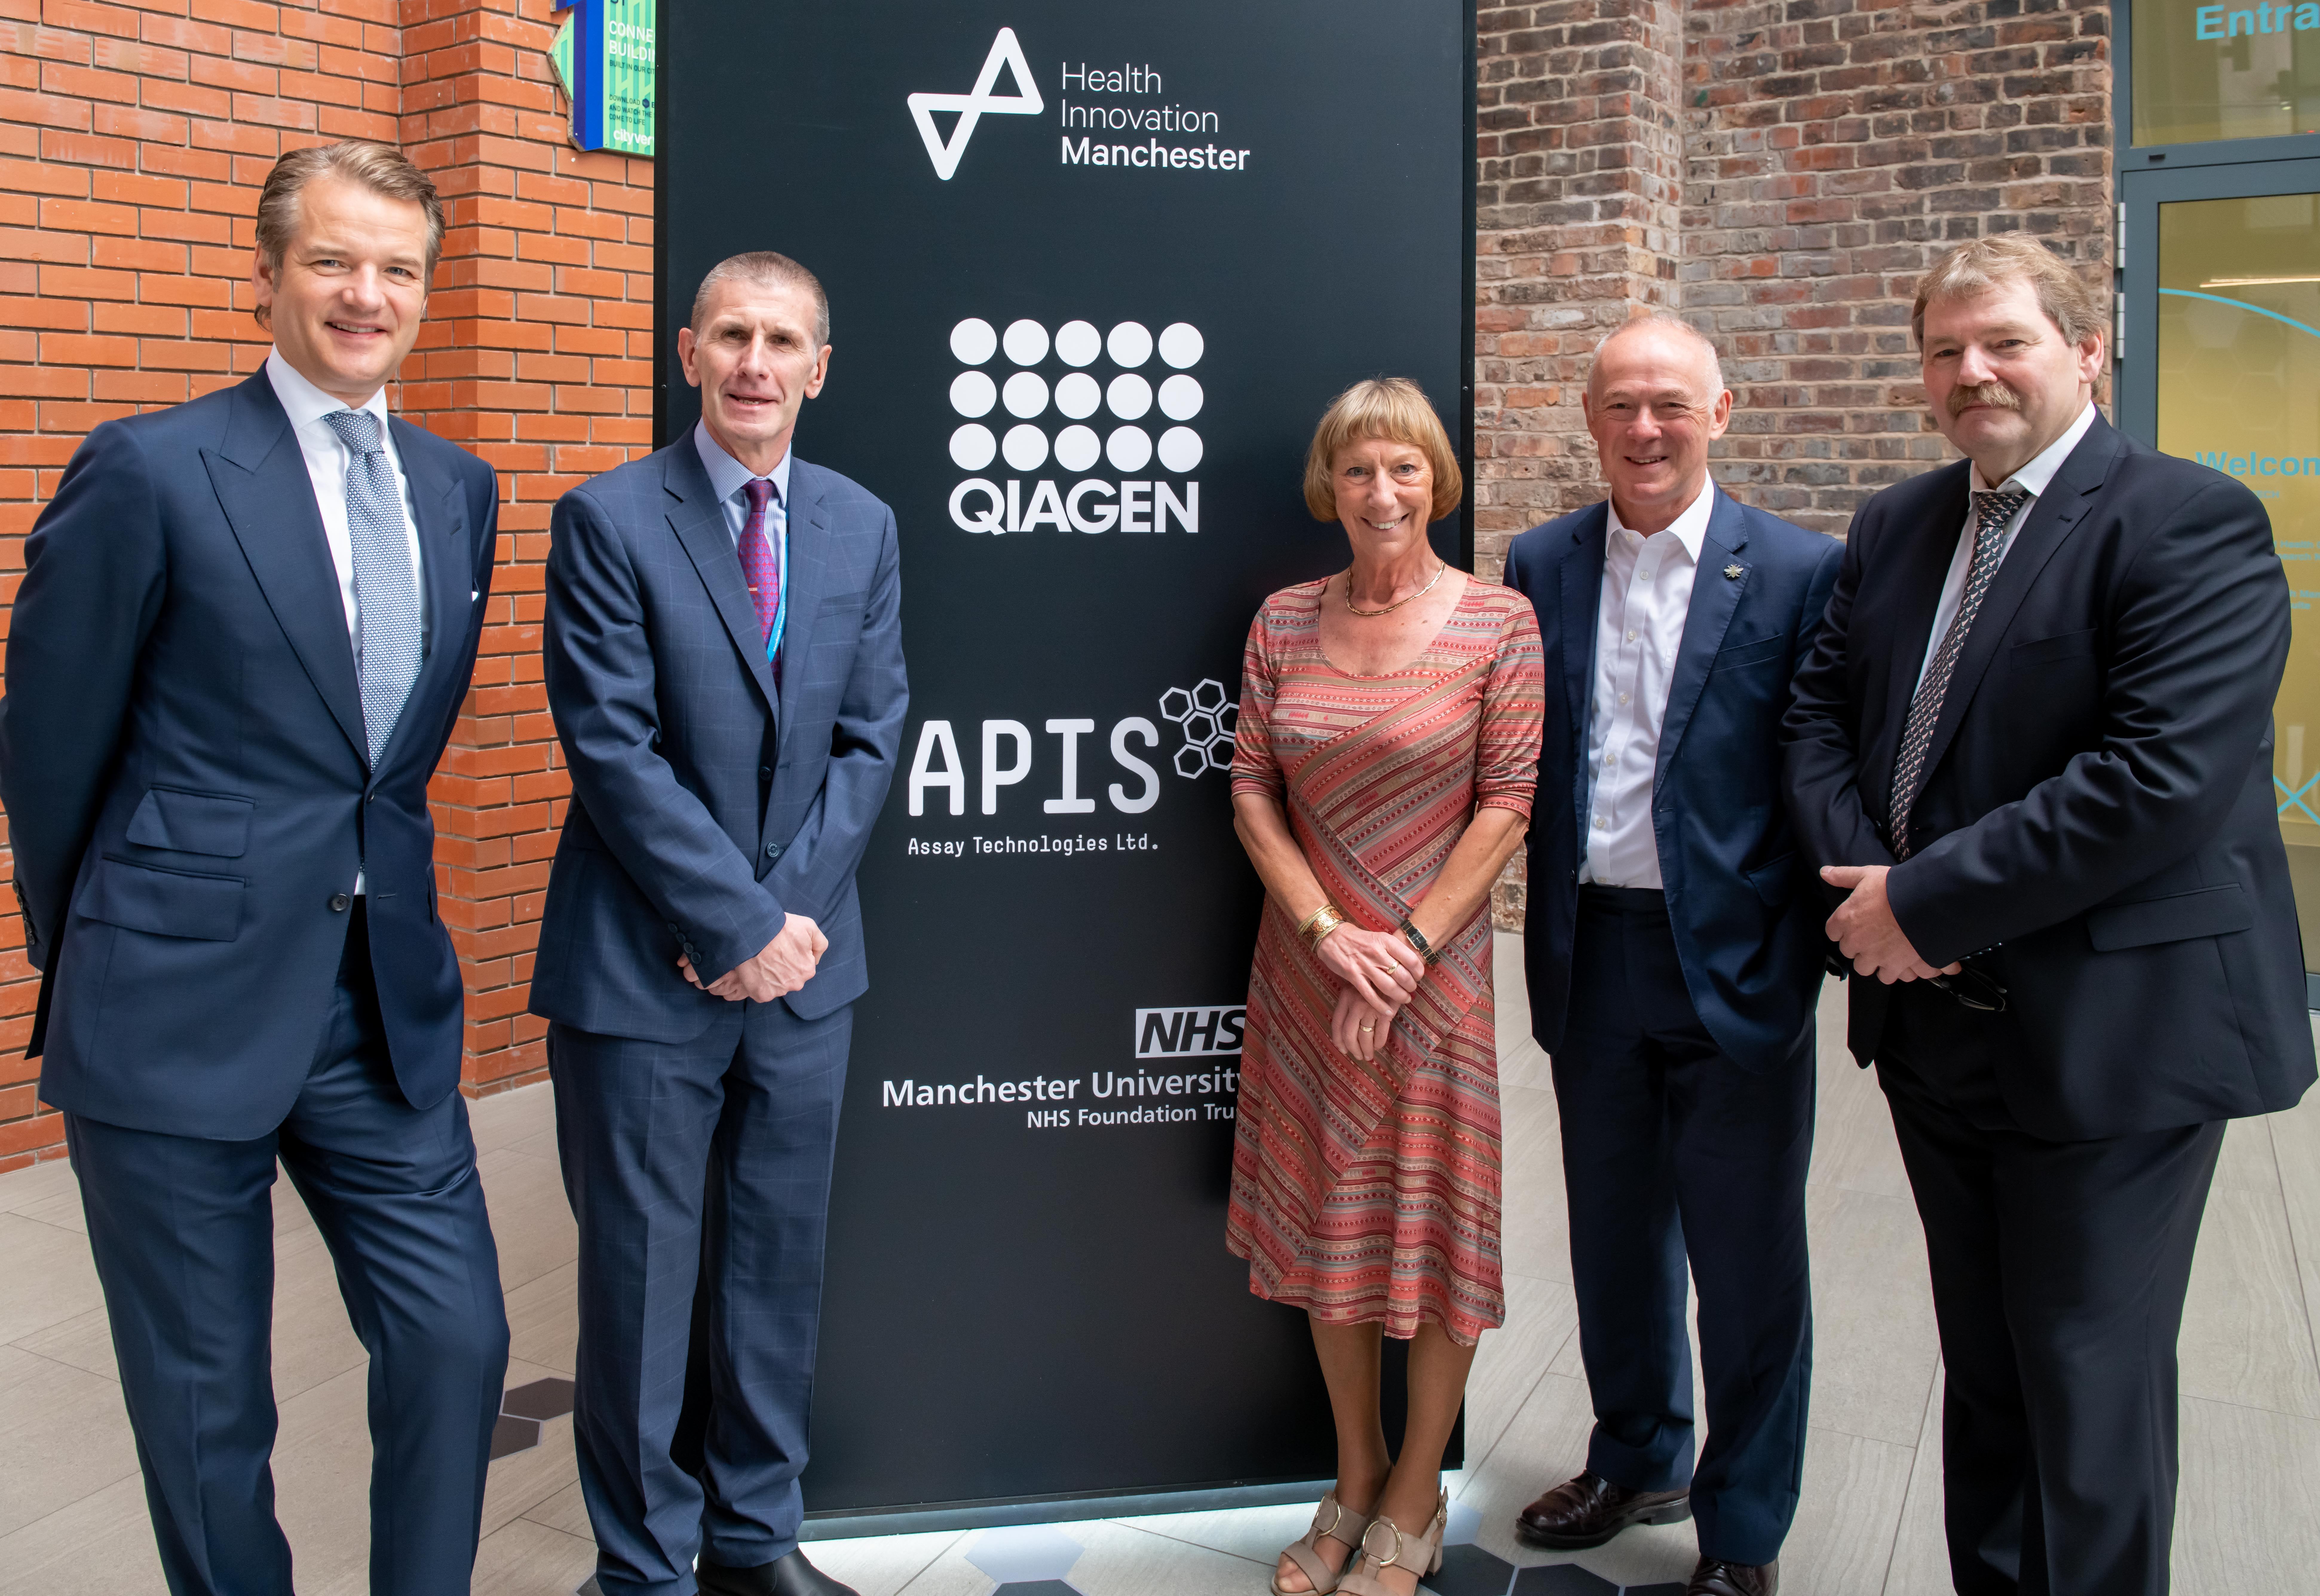 Health Innovation Manchester APIS event. PIC L-R: Peer Schatz, Mike Deegan, Rowena Burns, Sir Richard Leese and Joachim Schorr.